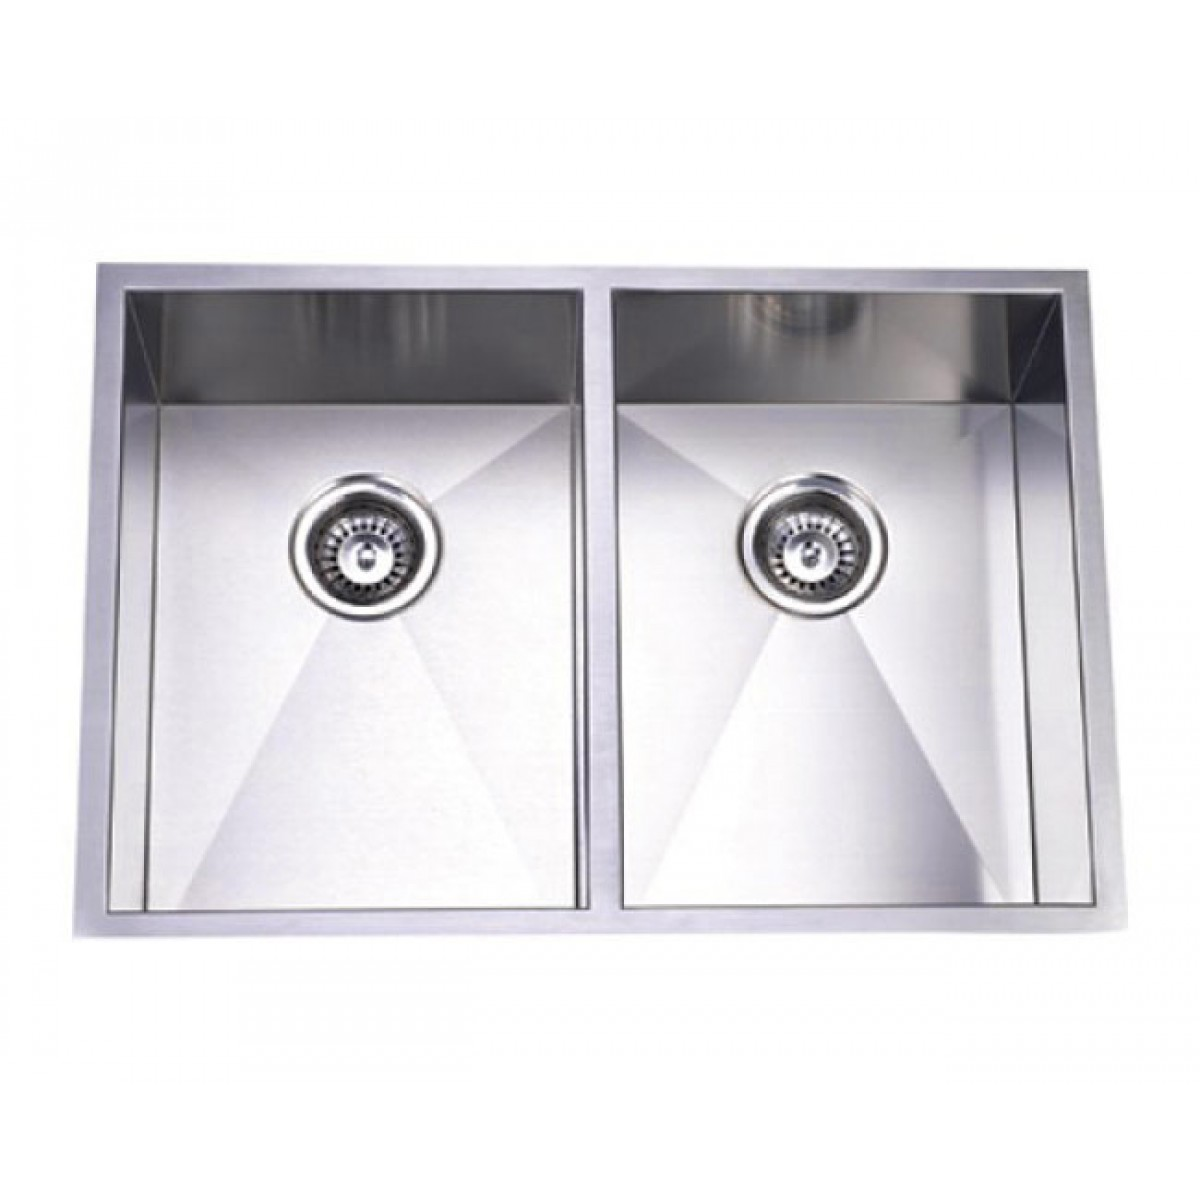 29 Inch Stainless Steel Undermount 50/50 Double Bowl Kitchen Sink ...